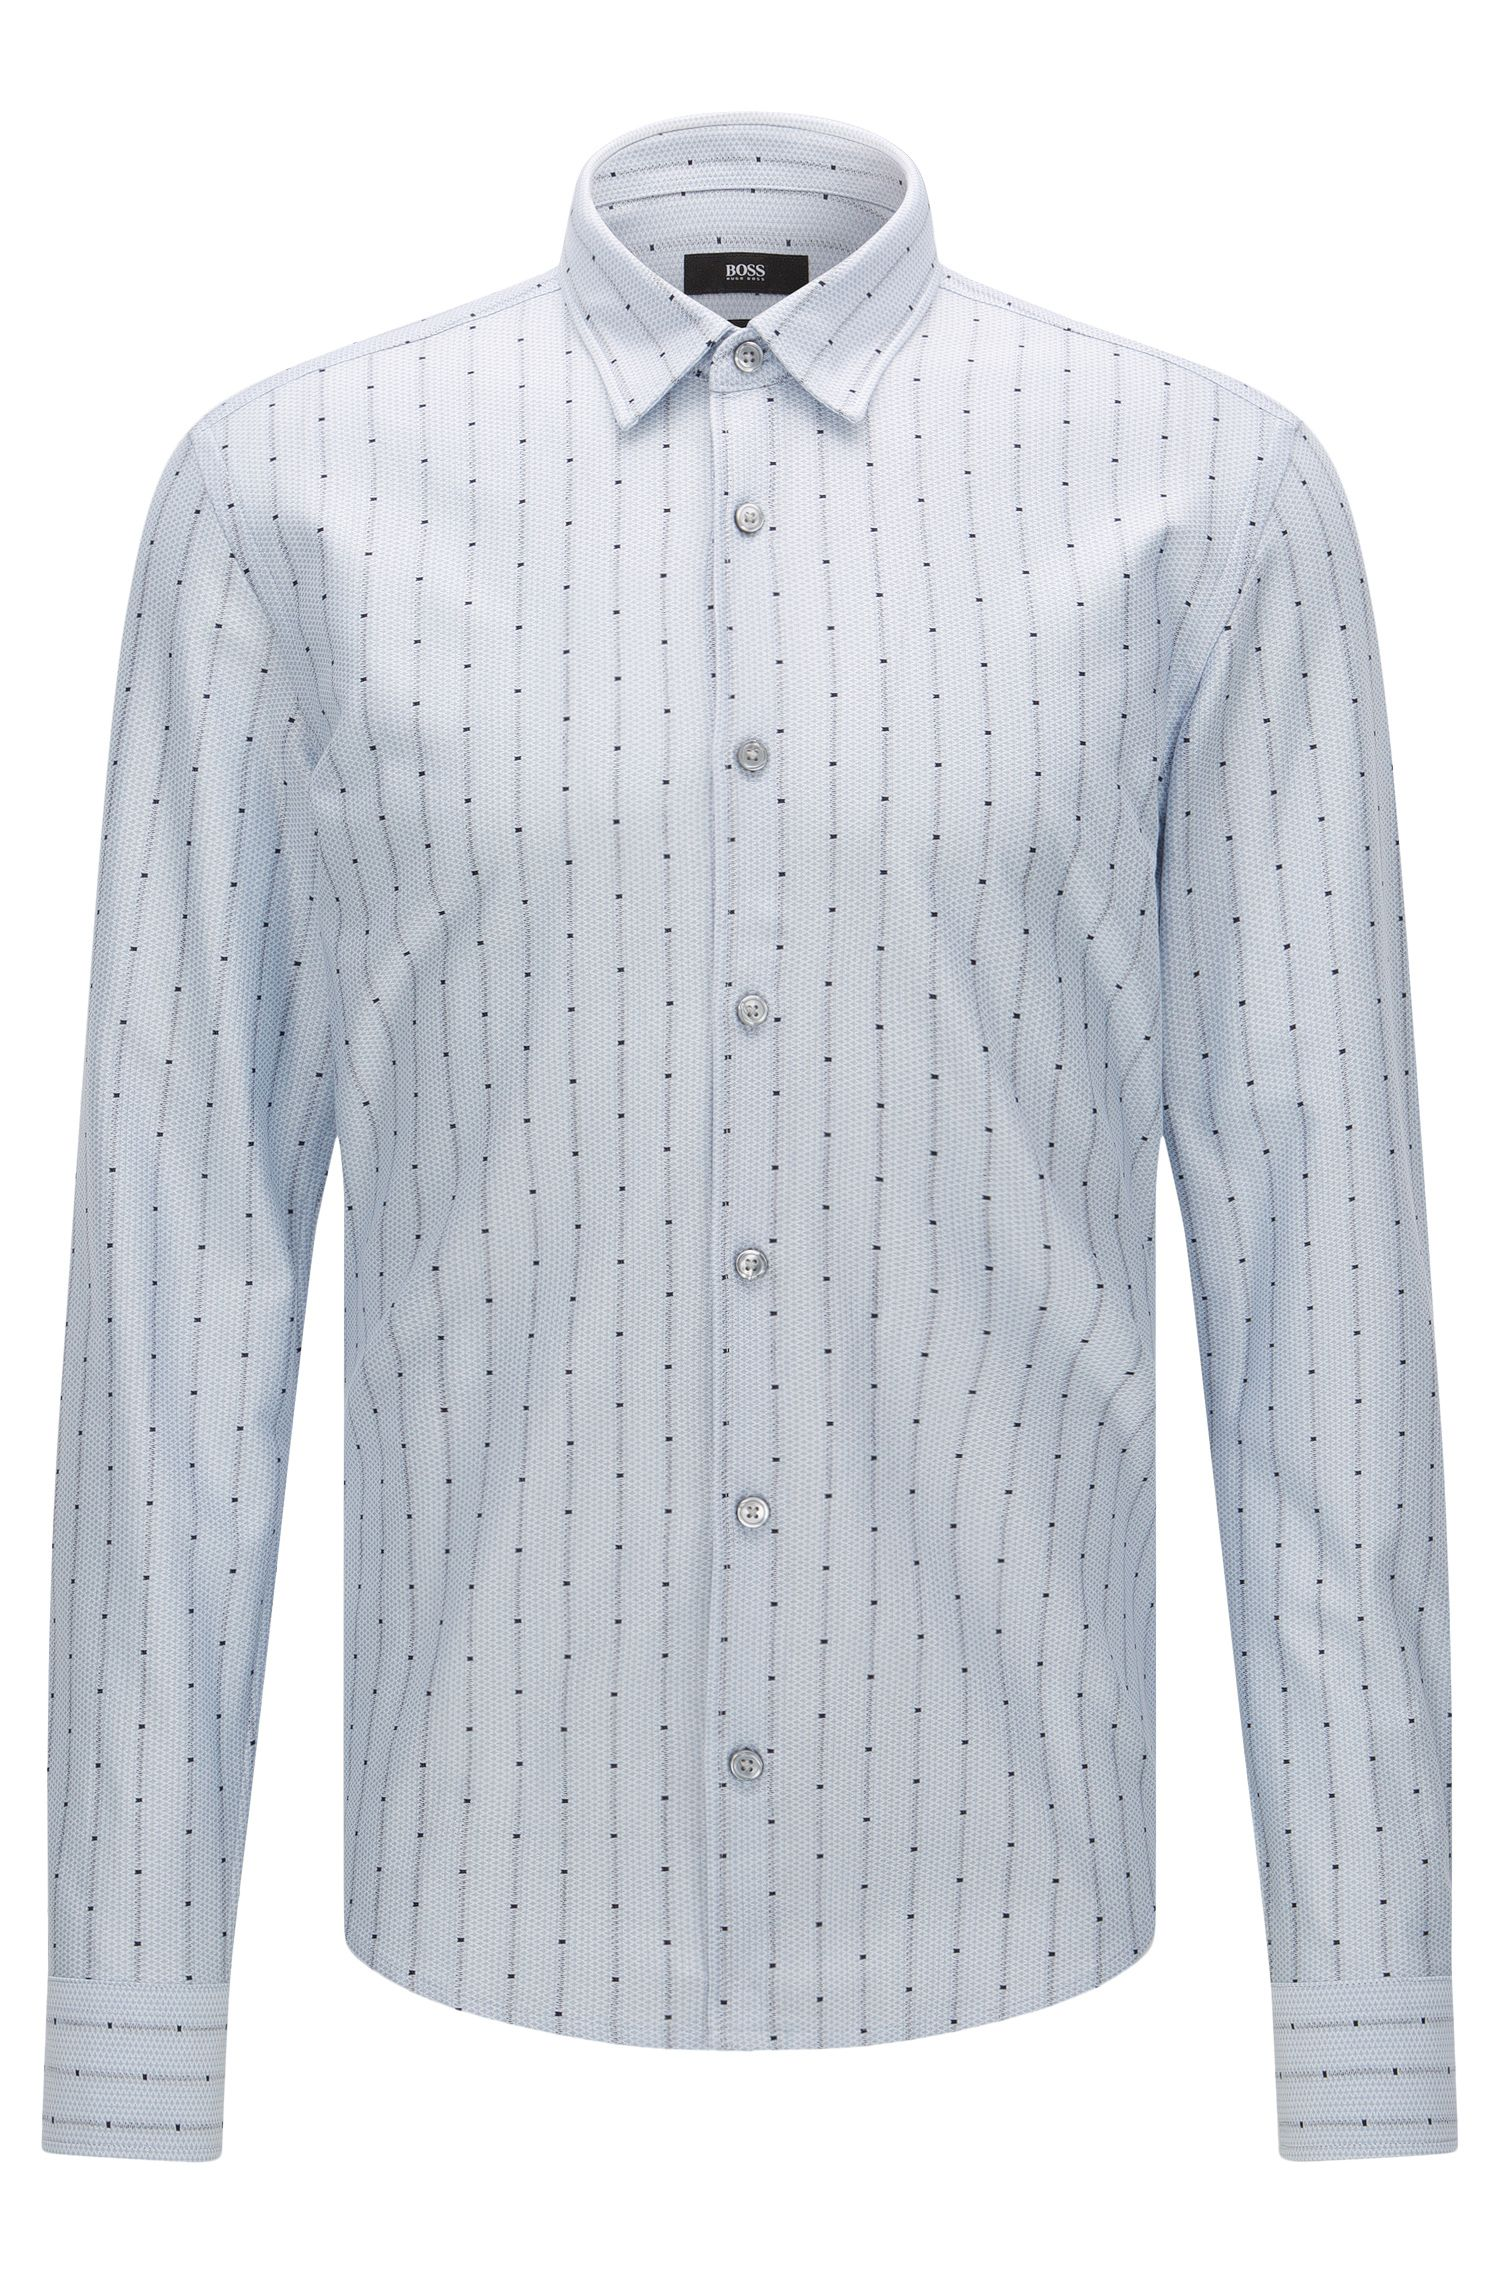 'Reid F' | Slim Fit, Cotton Jersey Button Down Shirt